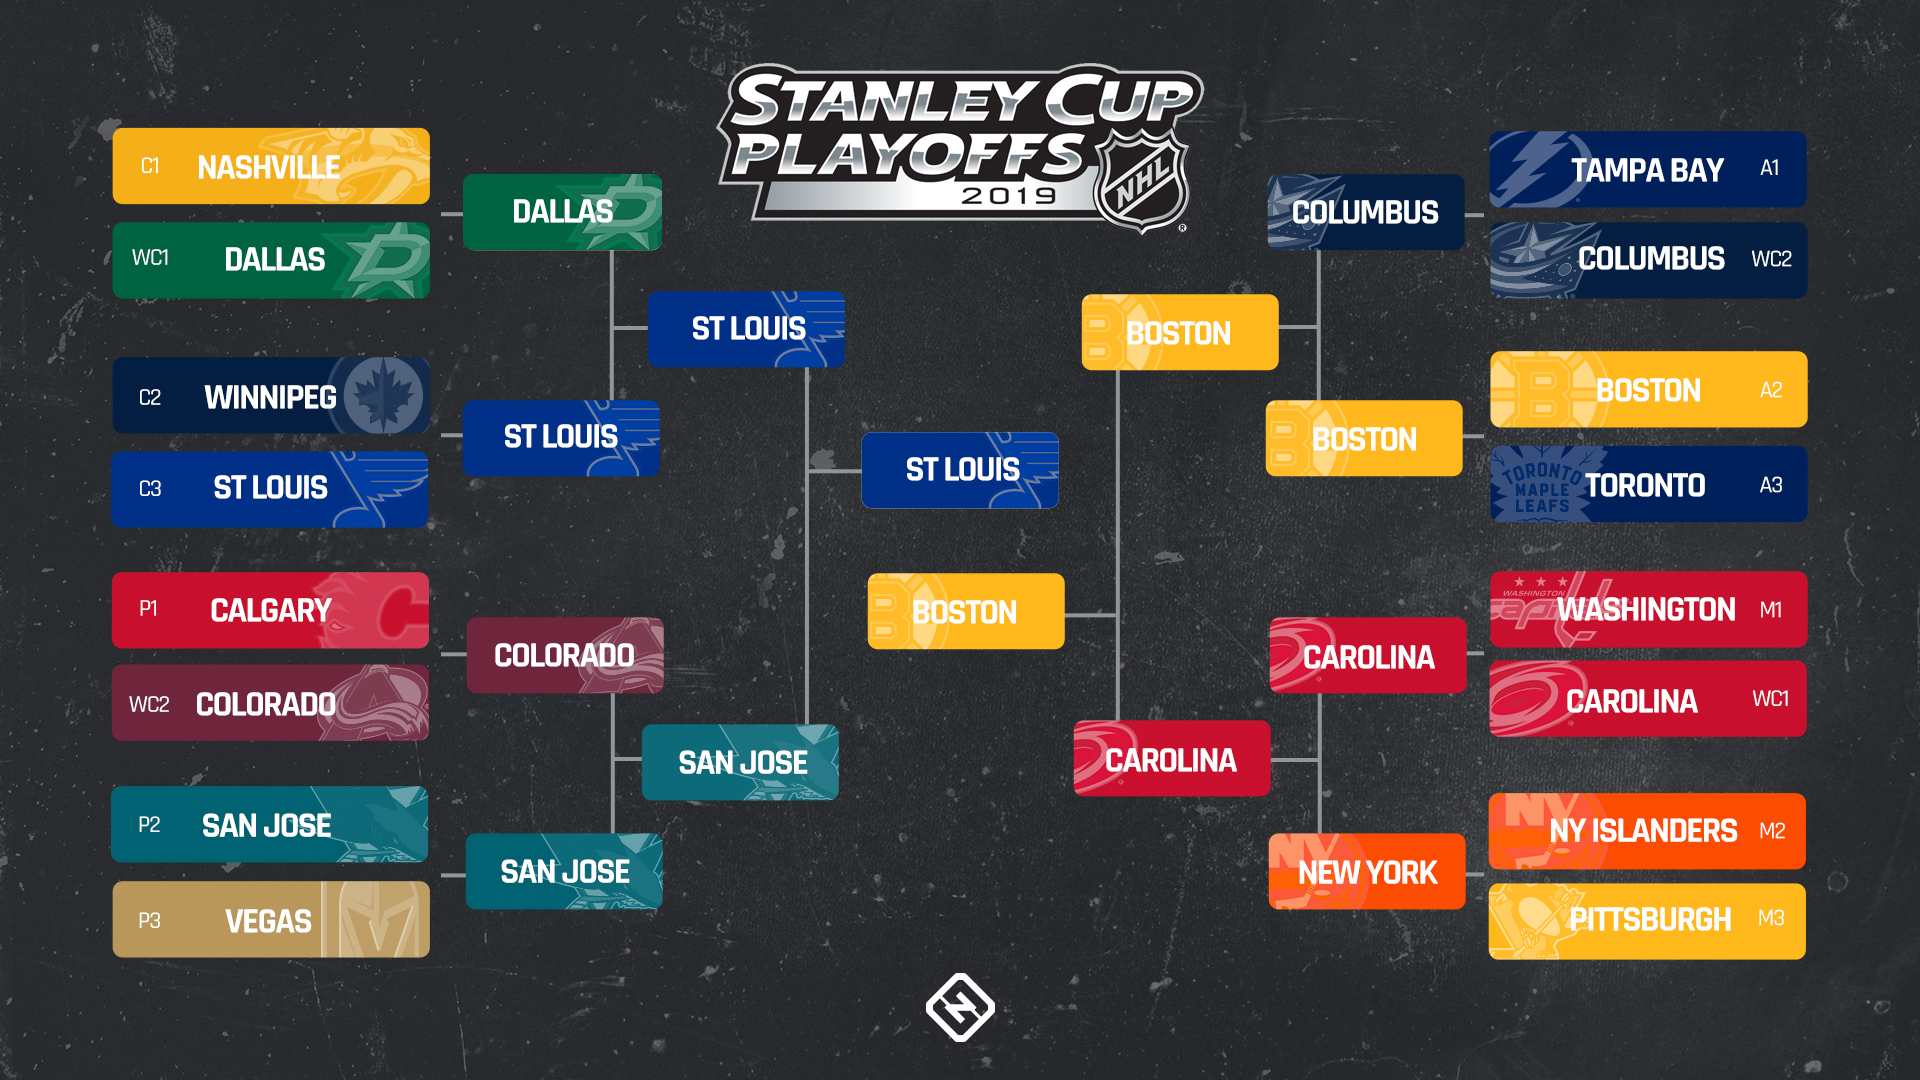 NHL playoffs schedule 2019: Full bracket, dates, times, TV channels